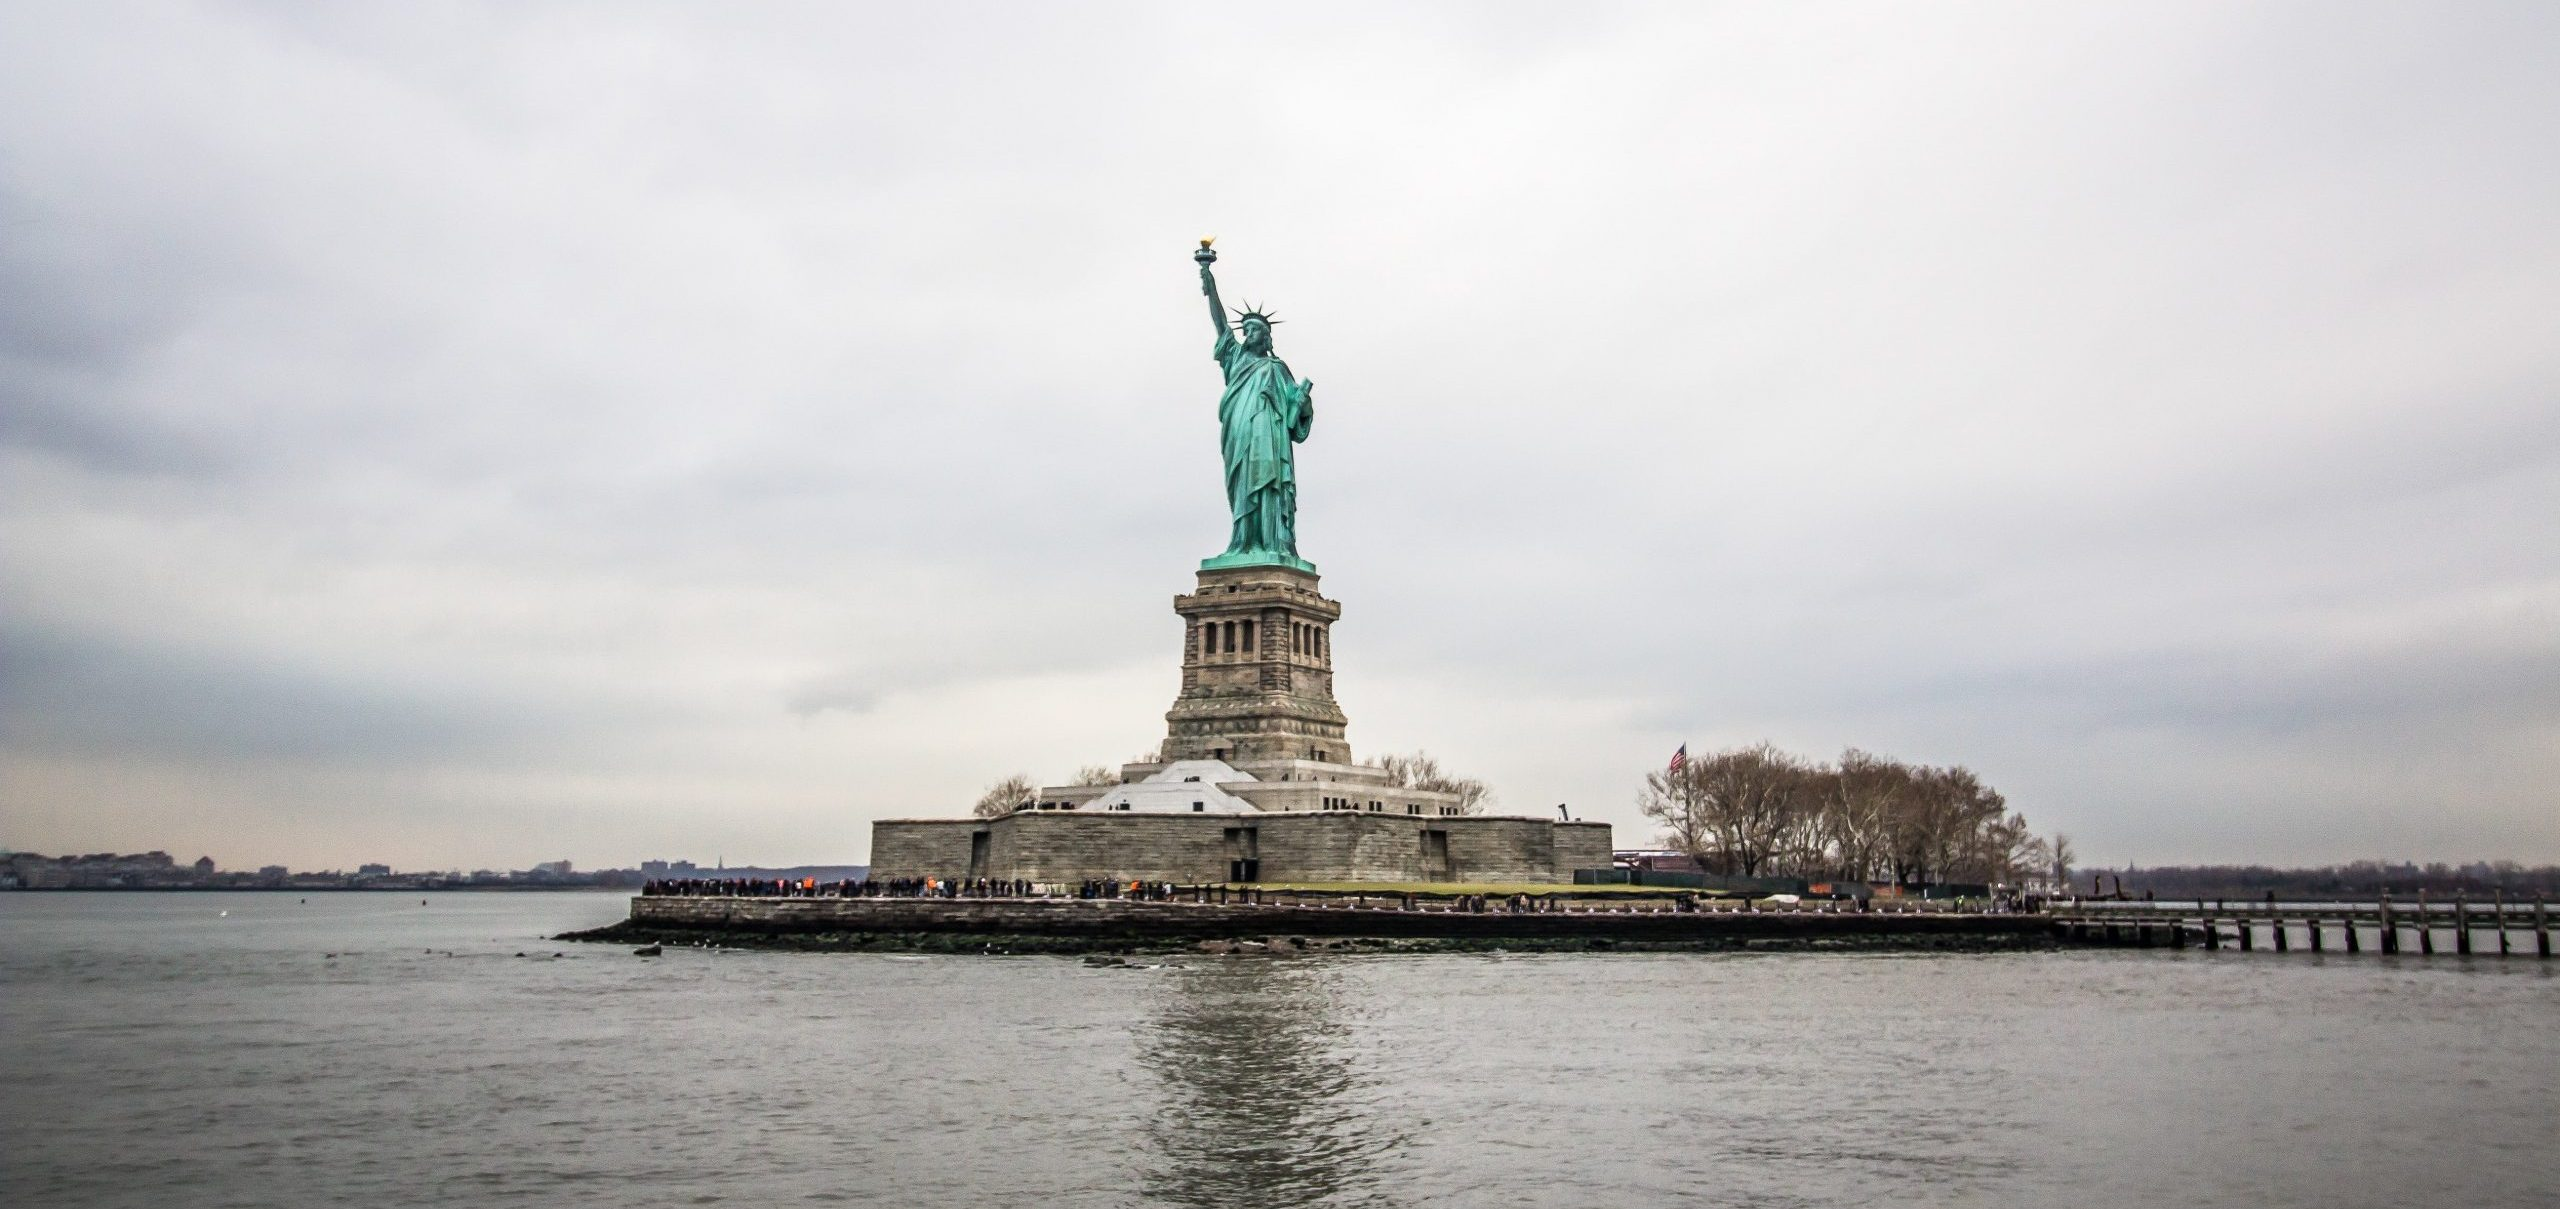 Statue of Liberty from New York Harbor